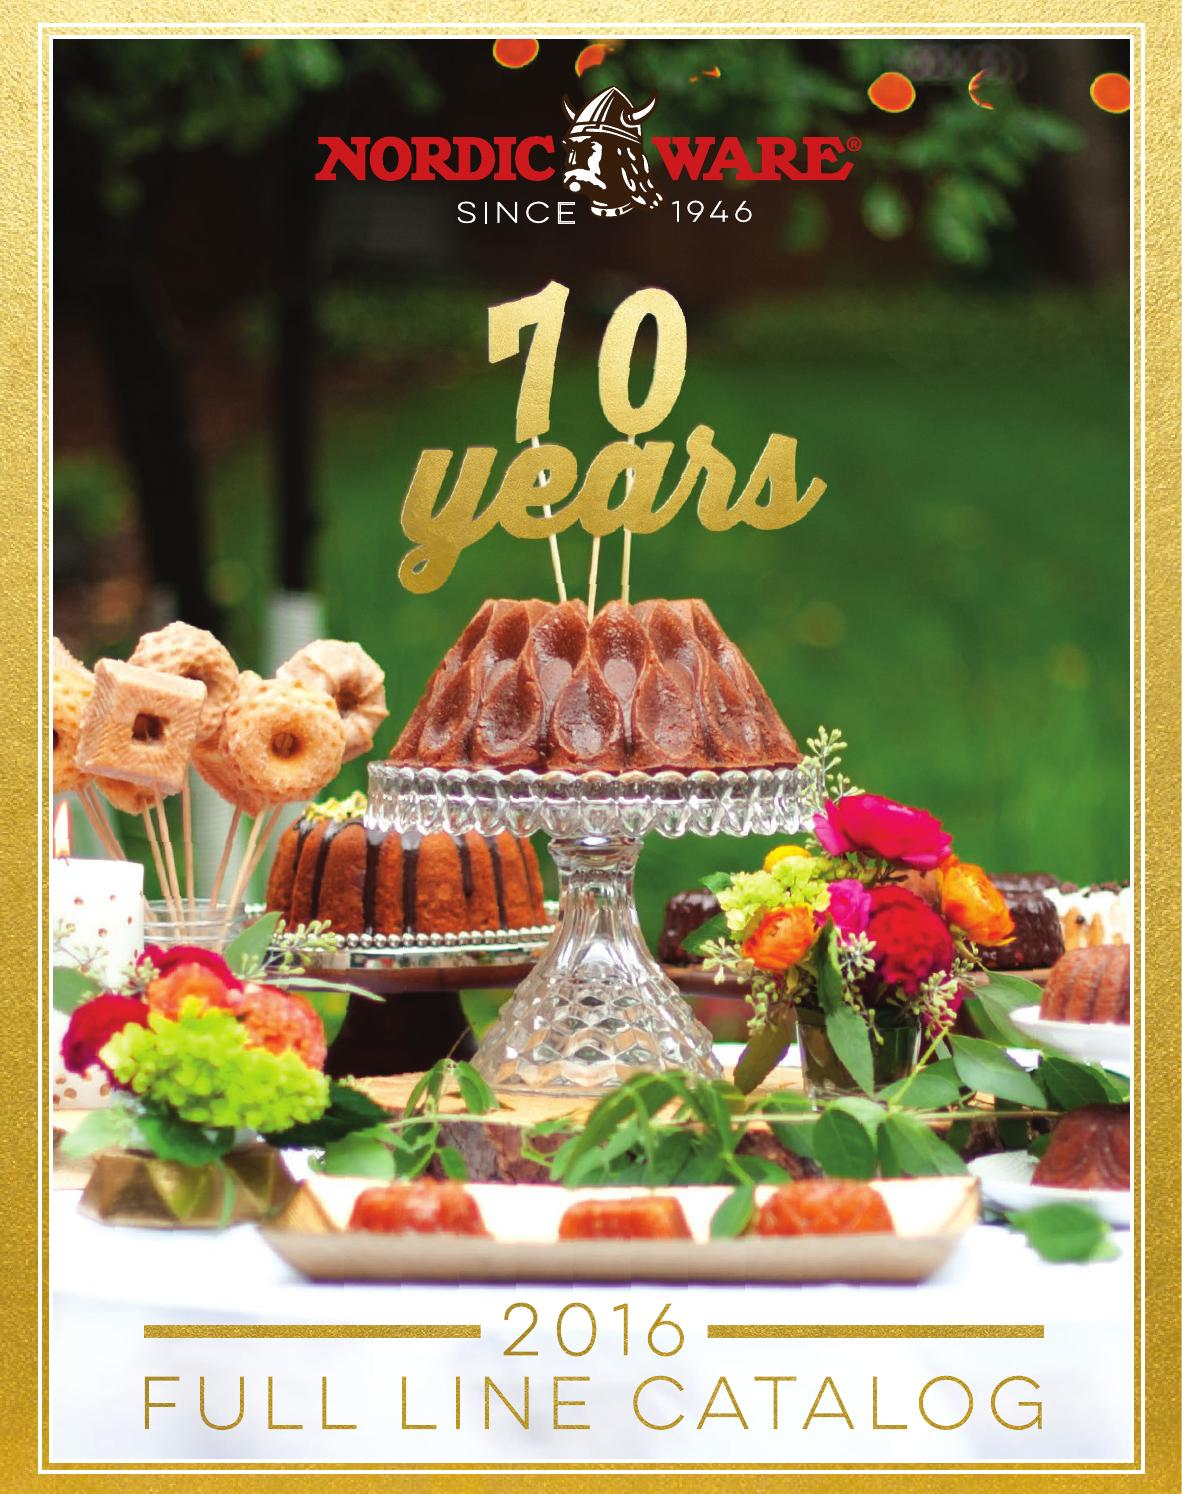 Nordic Ware Full Line Catalog 2016 By Nordic Ware Issuu